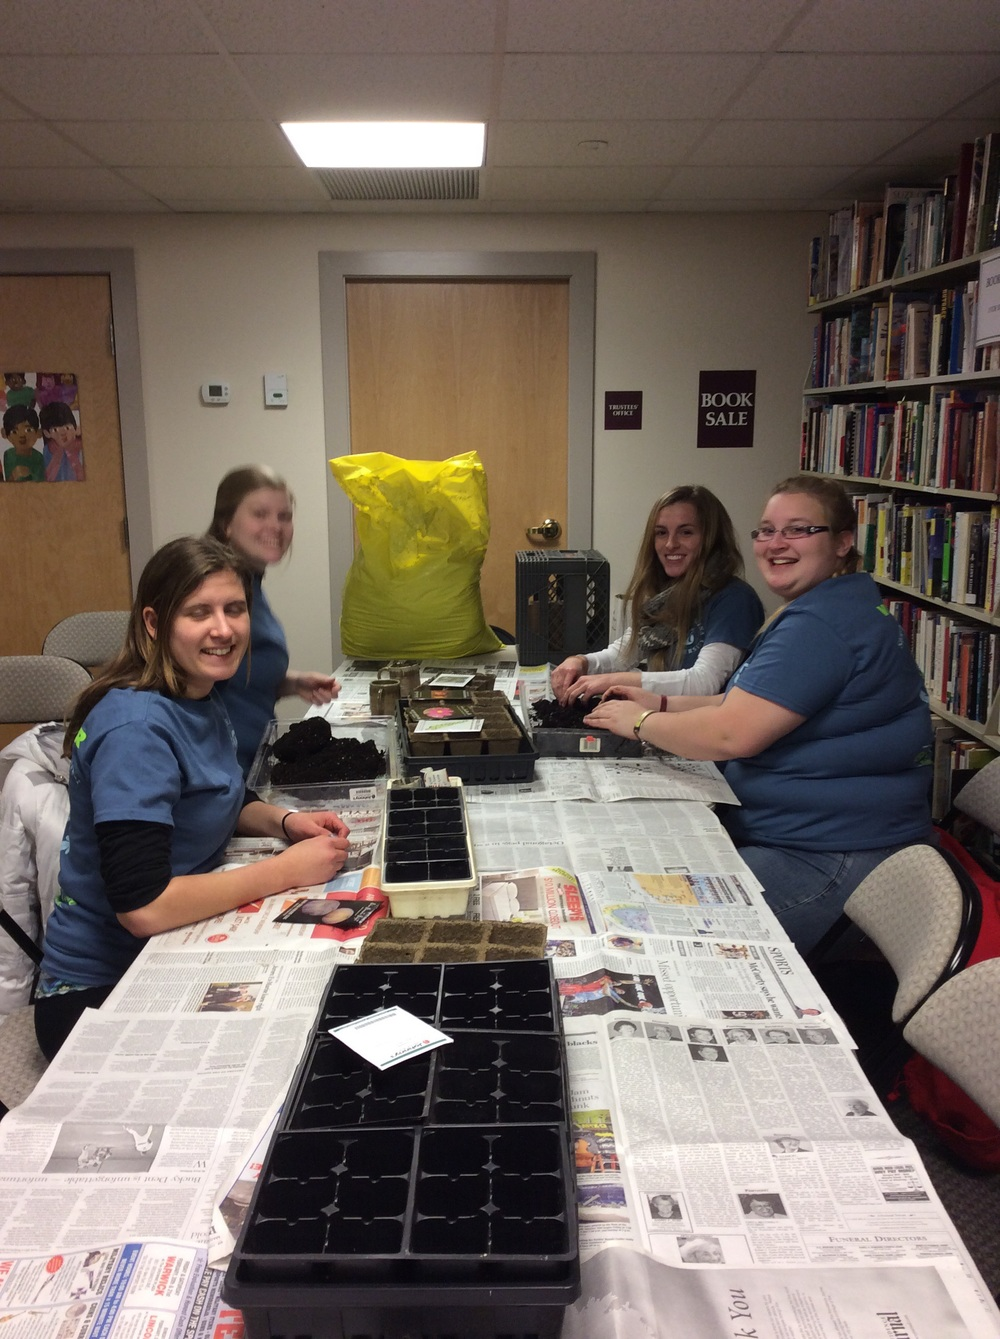 Four of the fourteen students who helped shovel ice from the parking lot, tutored in the use of electronic devises and digital media, shelved books, and started seeds.